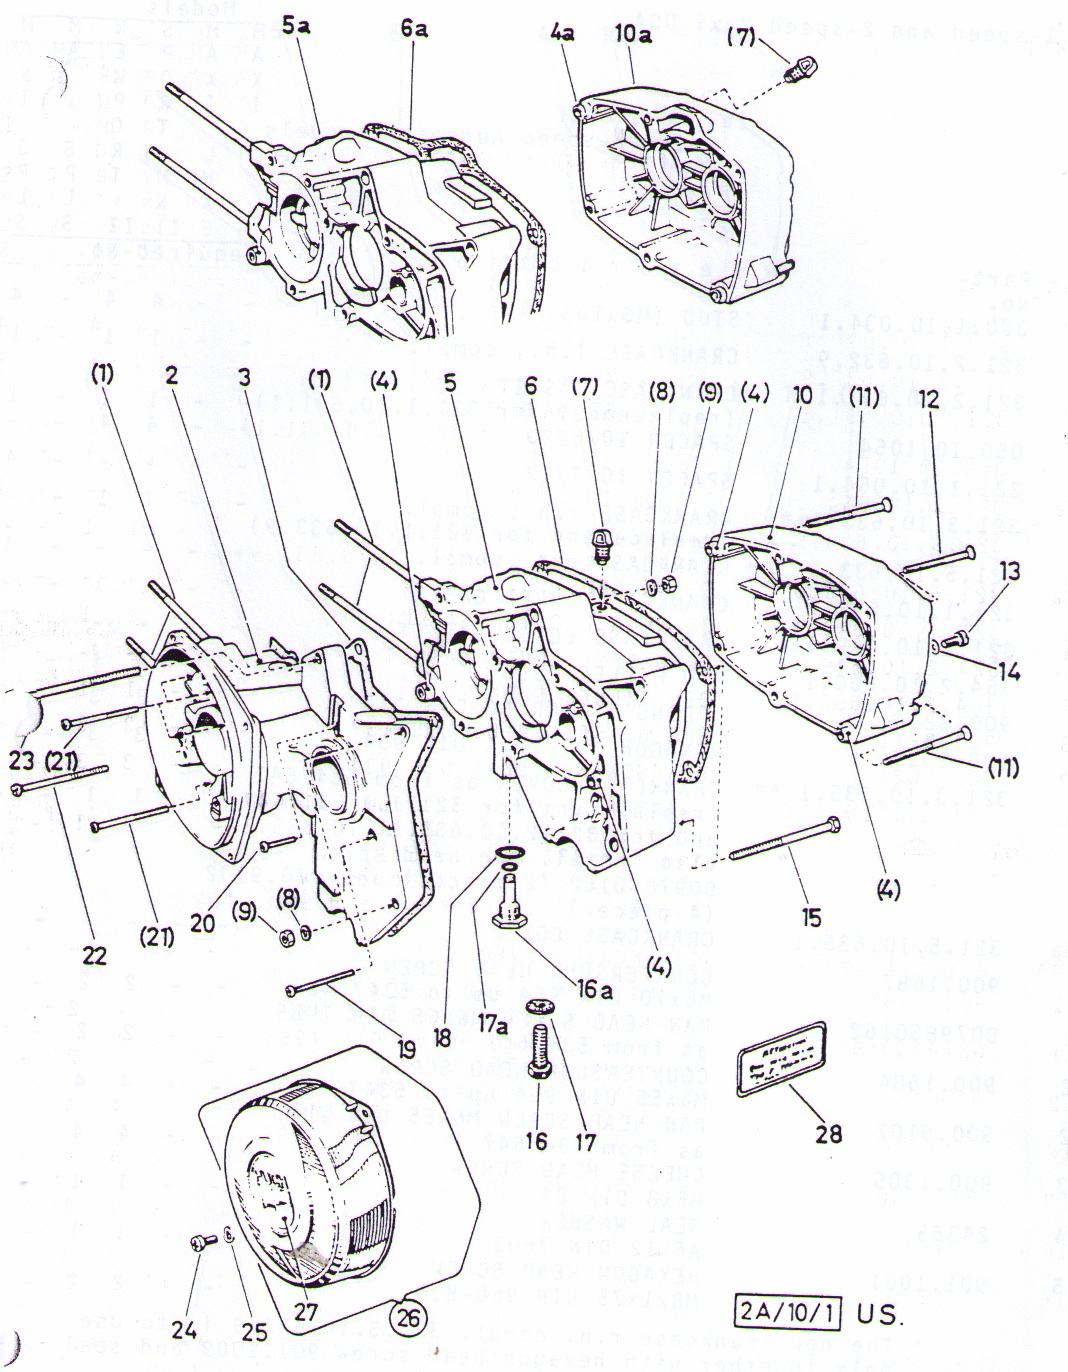 E50 Engine Diagram E34 Engine Wiring Diagram ~ Elsalvadorla